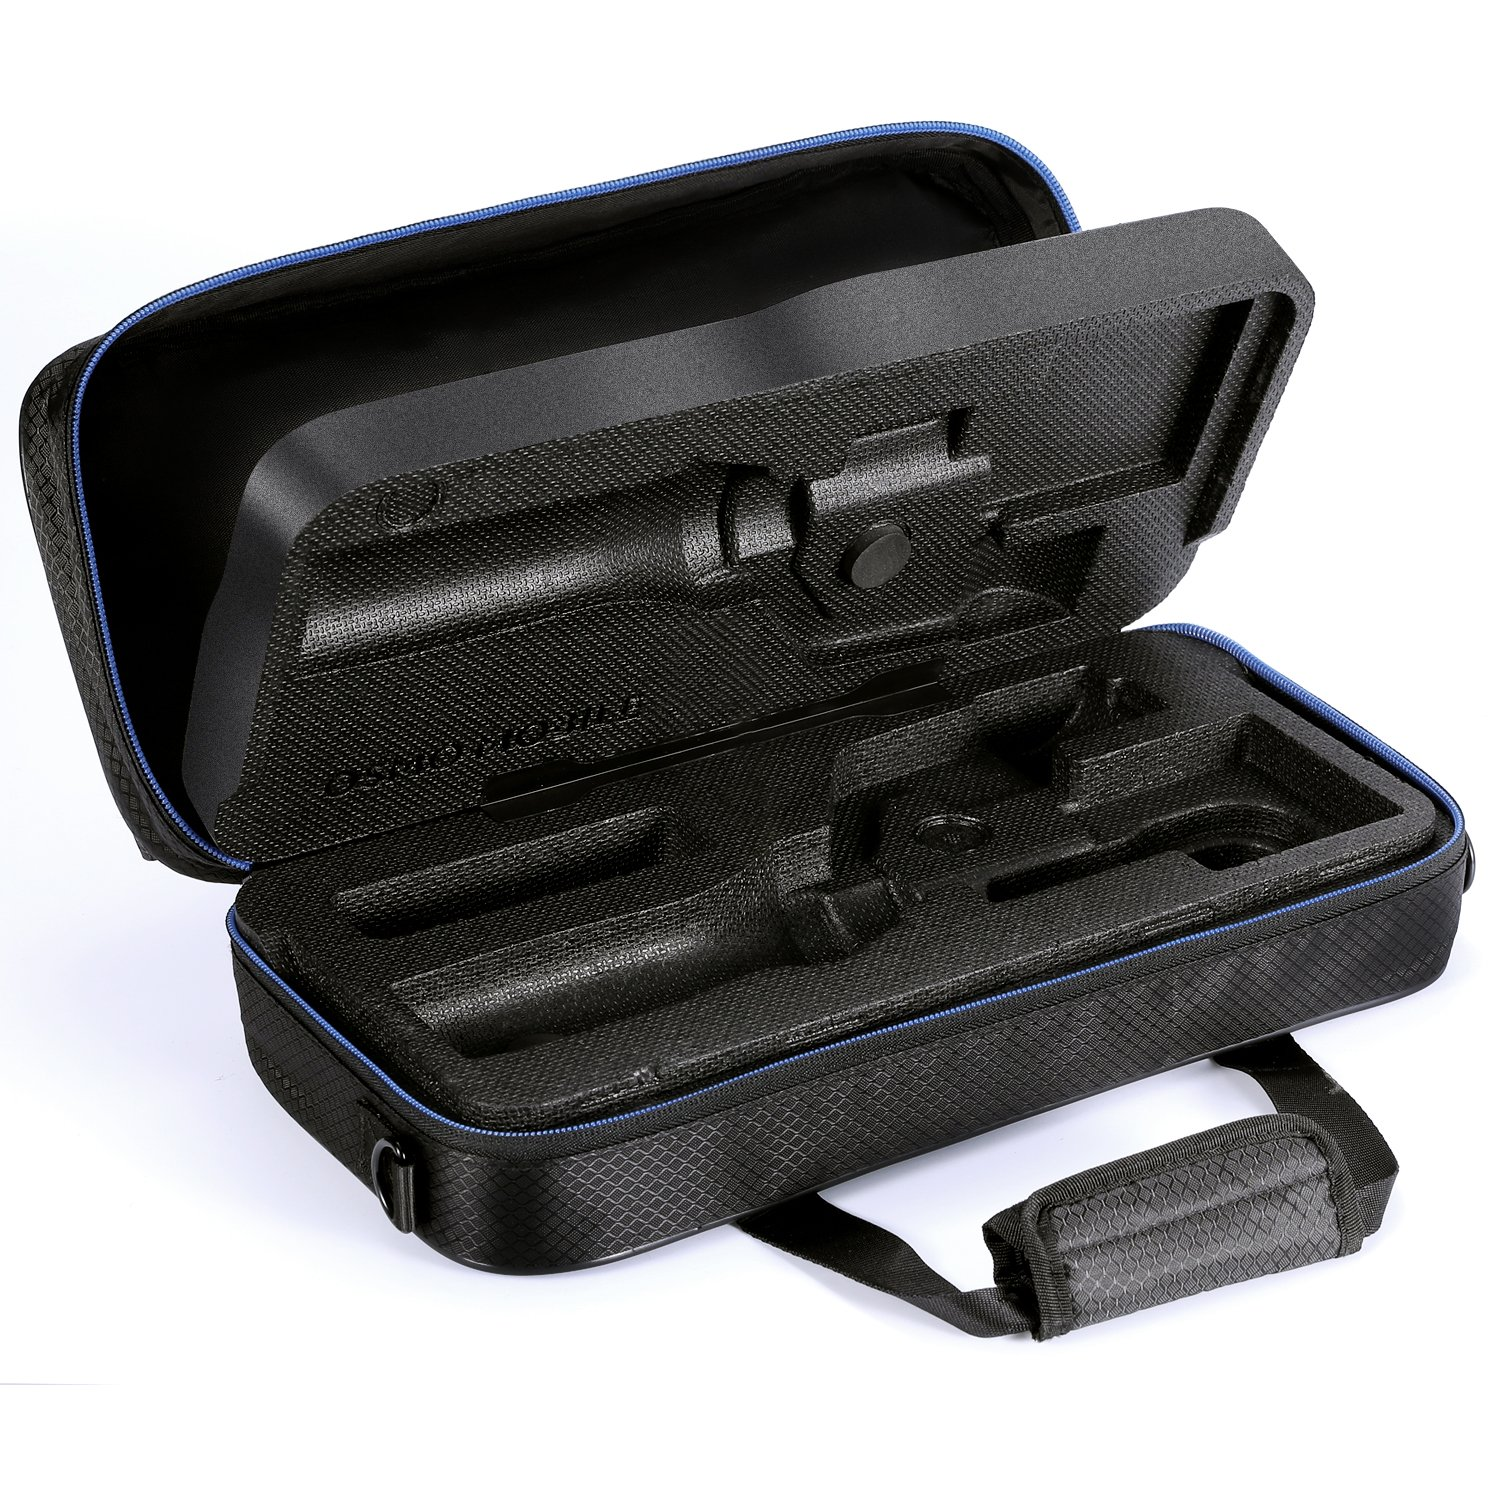 DJI Osmo Mobile 2 Carrying Case by DACCKIT - fit for DJI osmo mobile 2 Handheld Smartphone Gimbal with tripod combo, Extension Stick, Base by DACCKIT (Image #3)